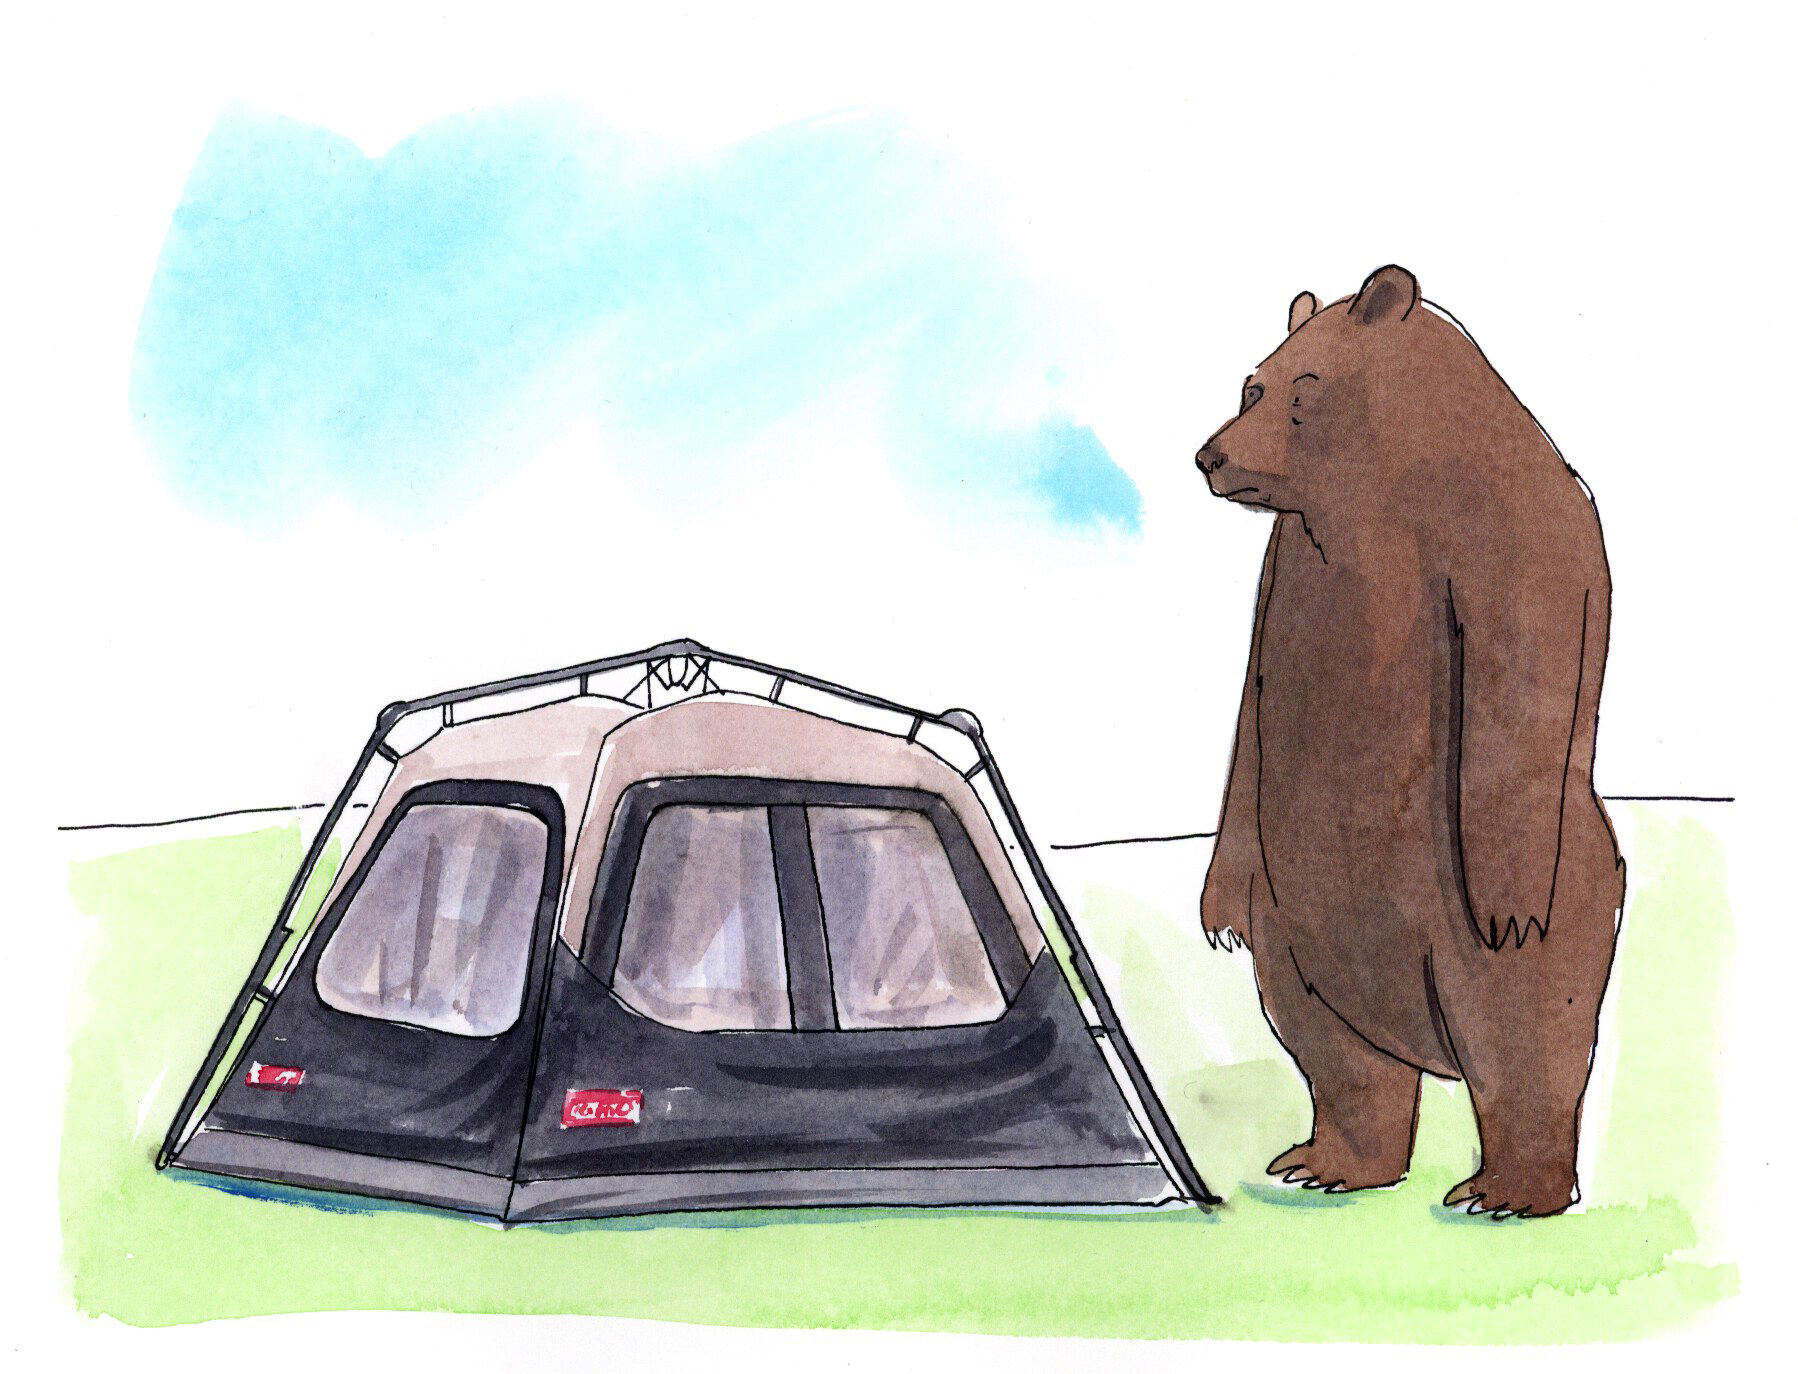 DCCA 14 2015 - ARTIST: Graham RoumieuTITLE: Camping Series [2 of 2]CLIENT: Coleman Canada